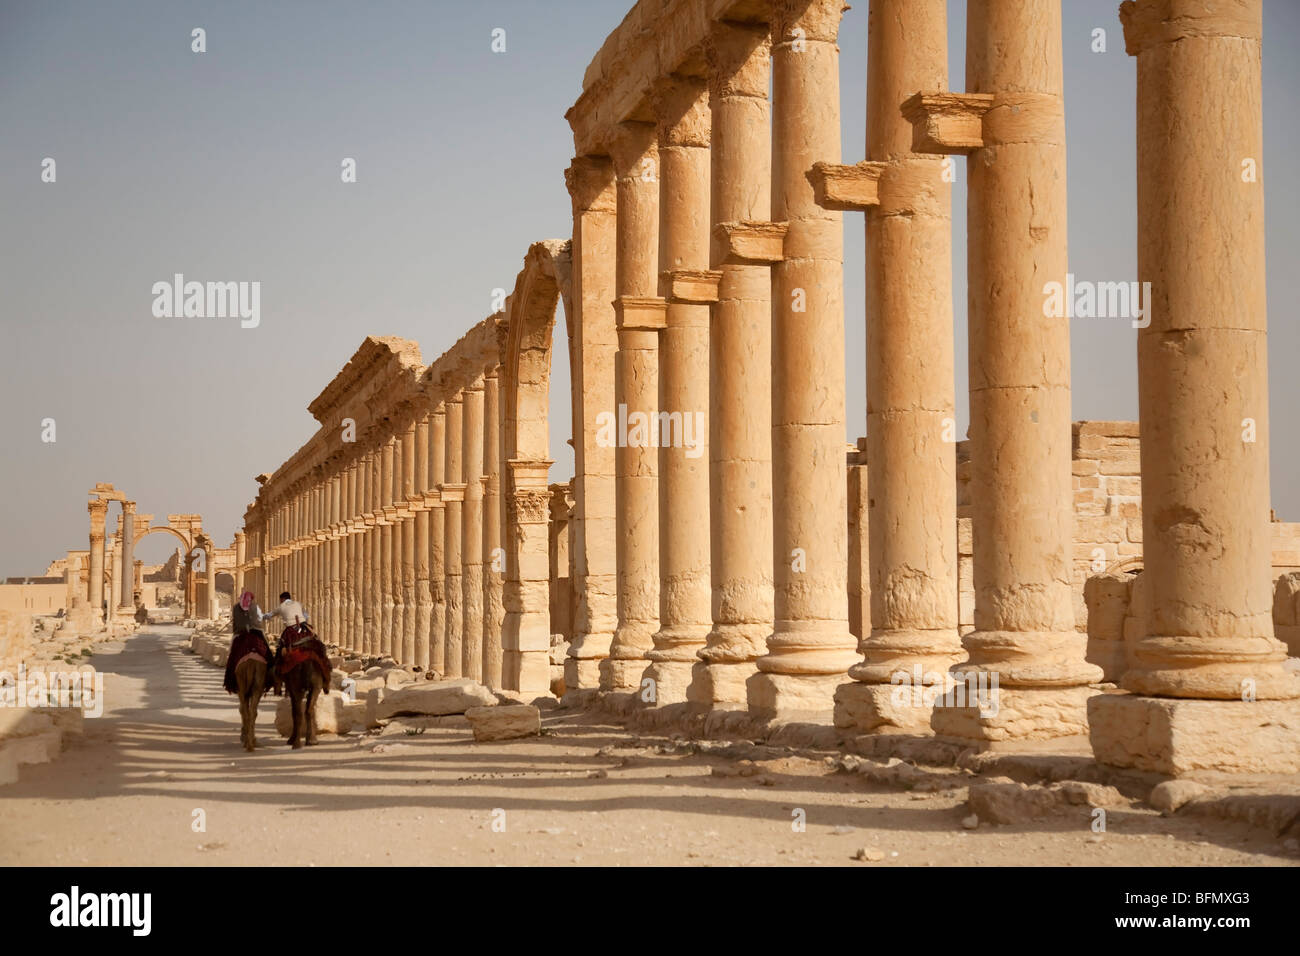 Syria, Palmyra. Riding amongst the ancient ruins of Queen Zenobia's city at Palmyra. - Stock Image